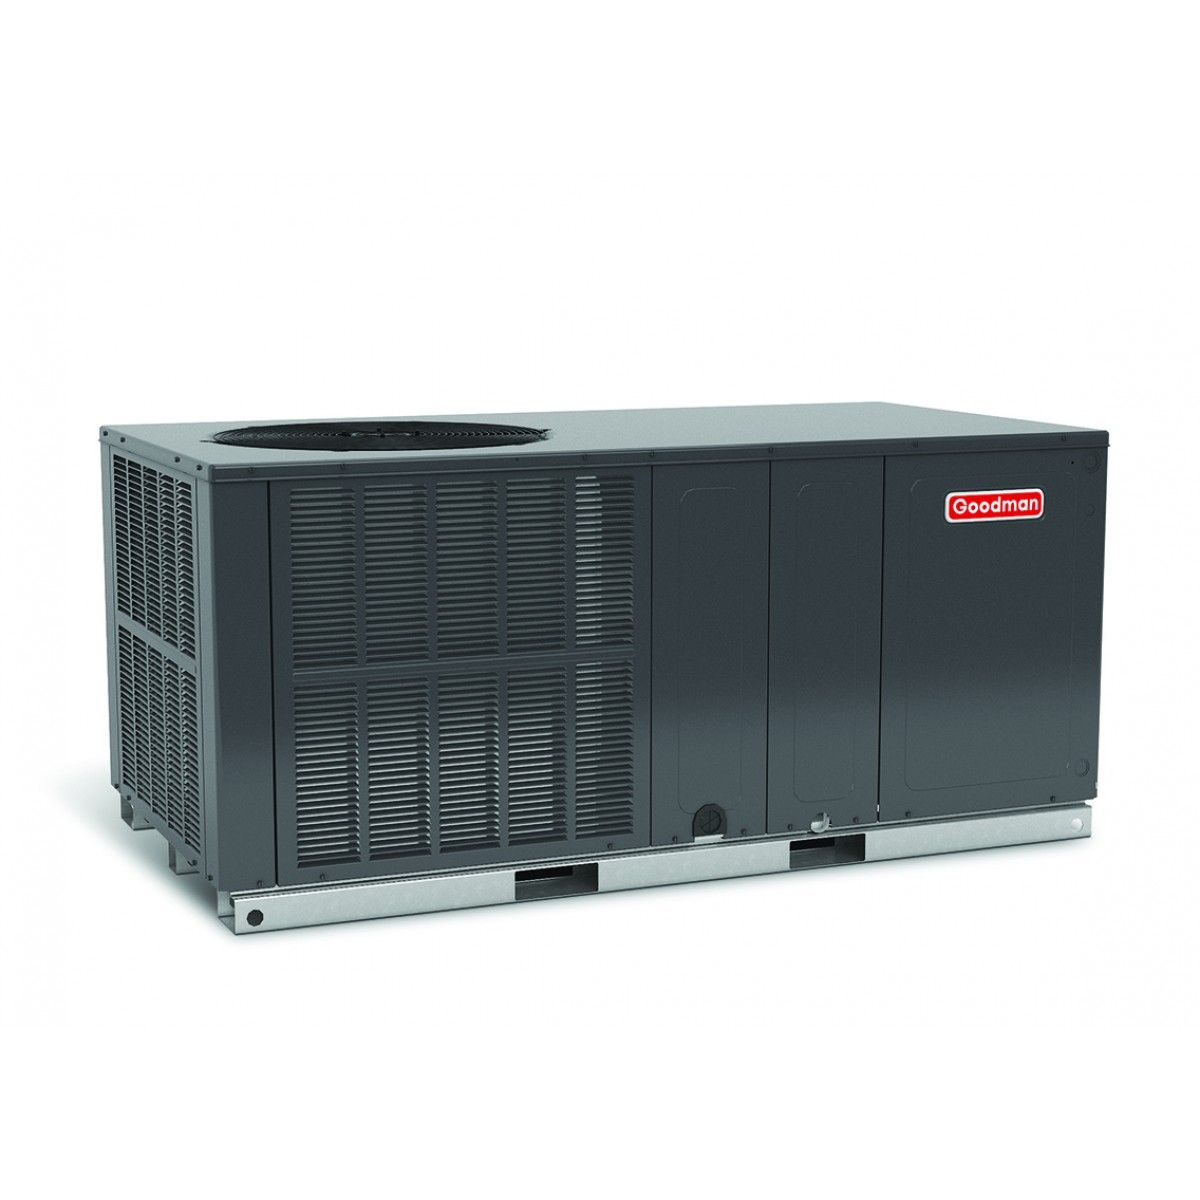 goodman 2.0 ton 14 seer electric heat package unit horizontal